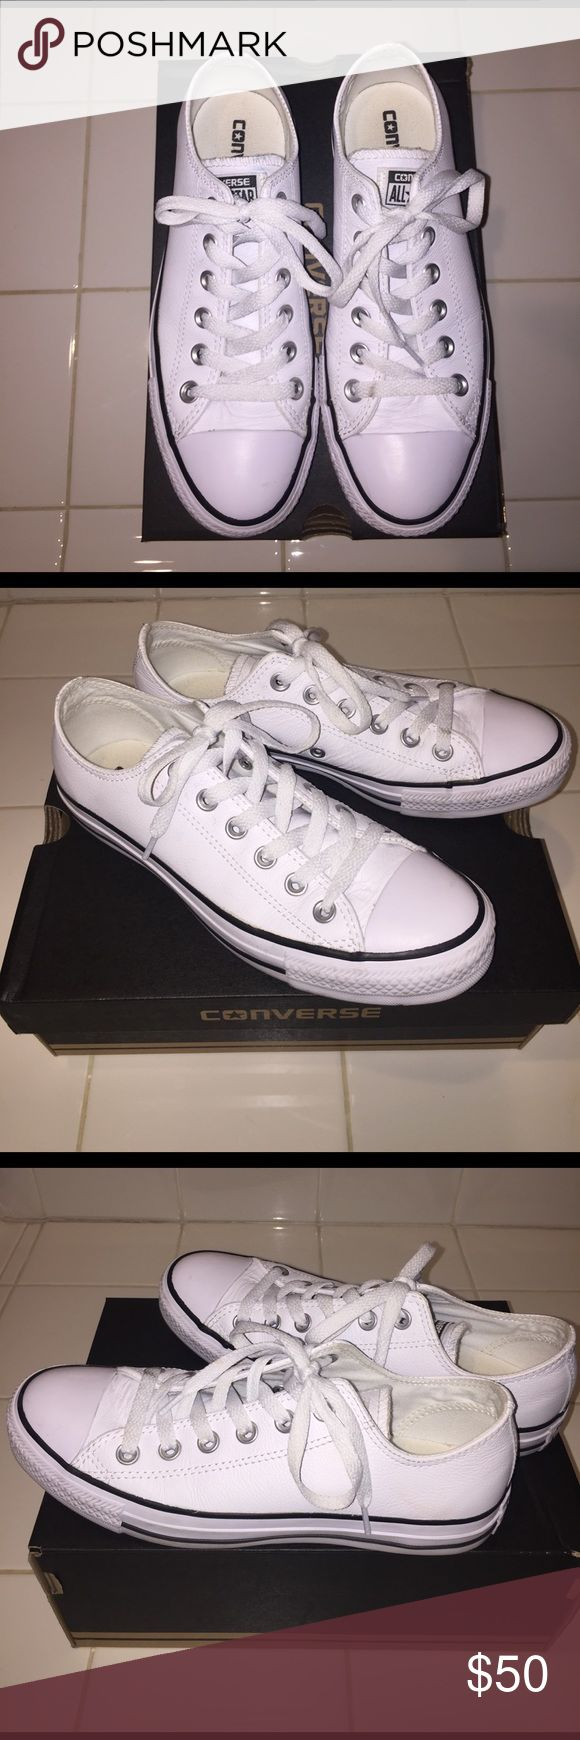 CONVERSE CHUCK TAYLOR DAINTY OX- WHITE LEATHER All white leather converse shoes. Thought these would fit but are a size too big. Size 7 in women; 5 in men. Was too late to return. Literally worn 2-3 times ever! Shoes are in like new condition; signs of wear (typical creasing where toes bend) but no signs of damage. Converse Shoes Sneakers